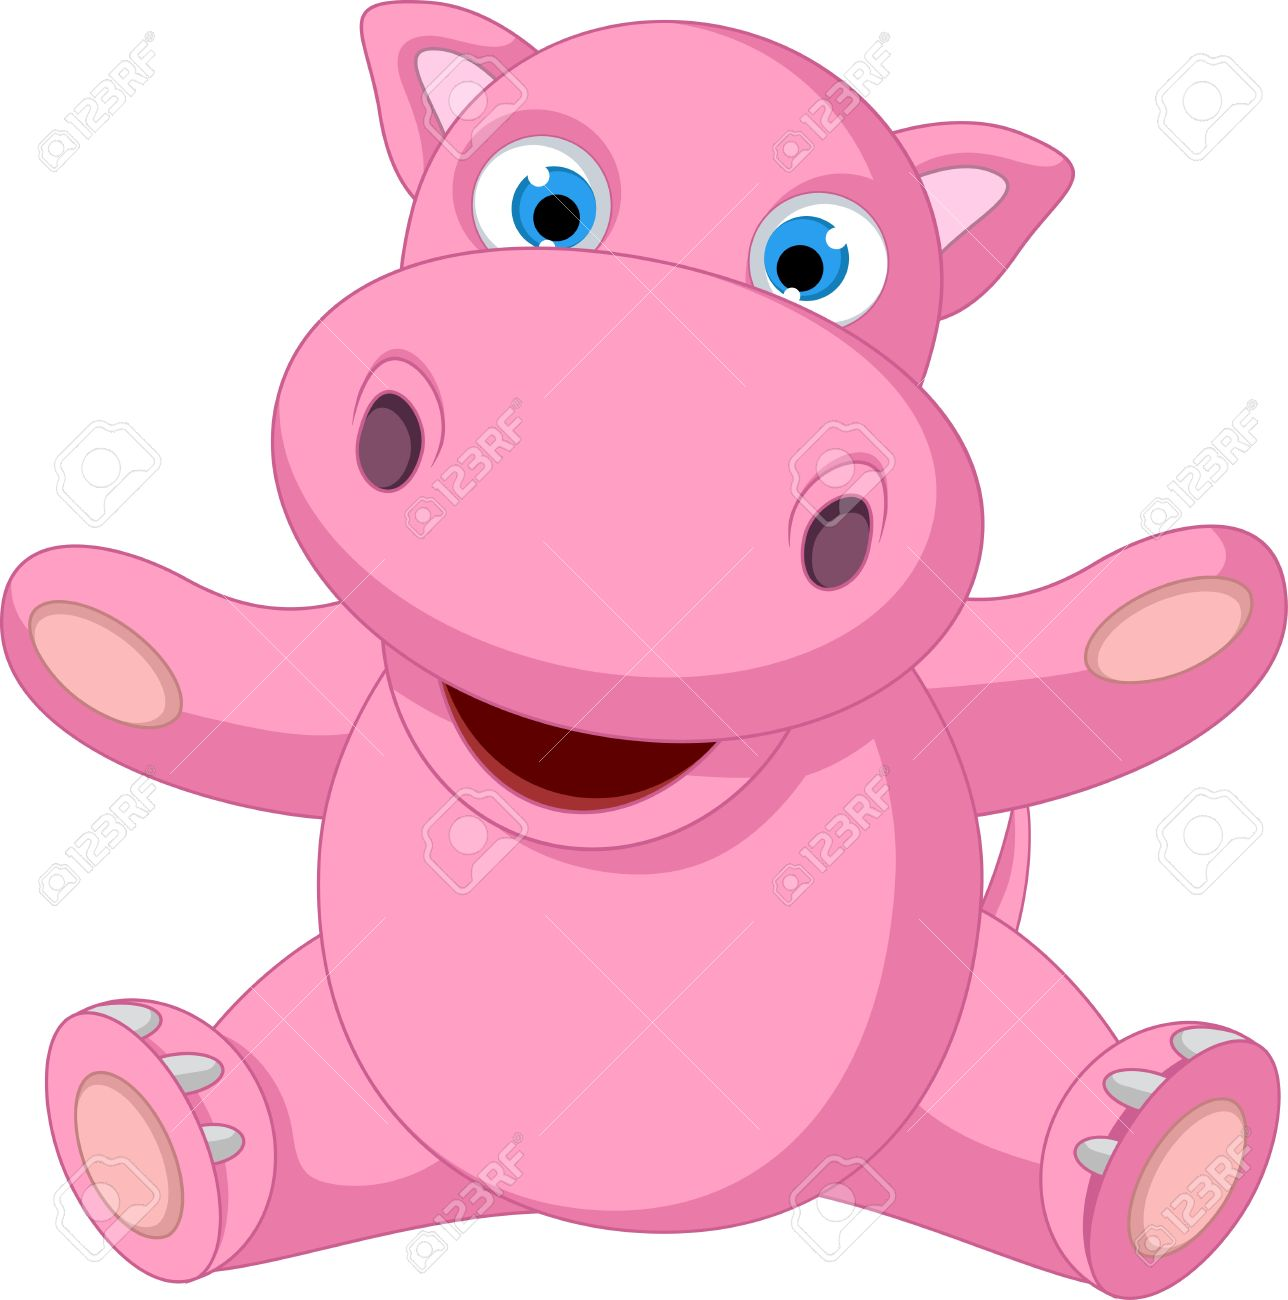 1288x1300 Cute Baby Hippo Cartoon Sitting Royalty Free Cliparts, Vectors